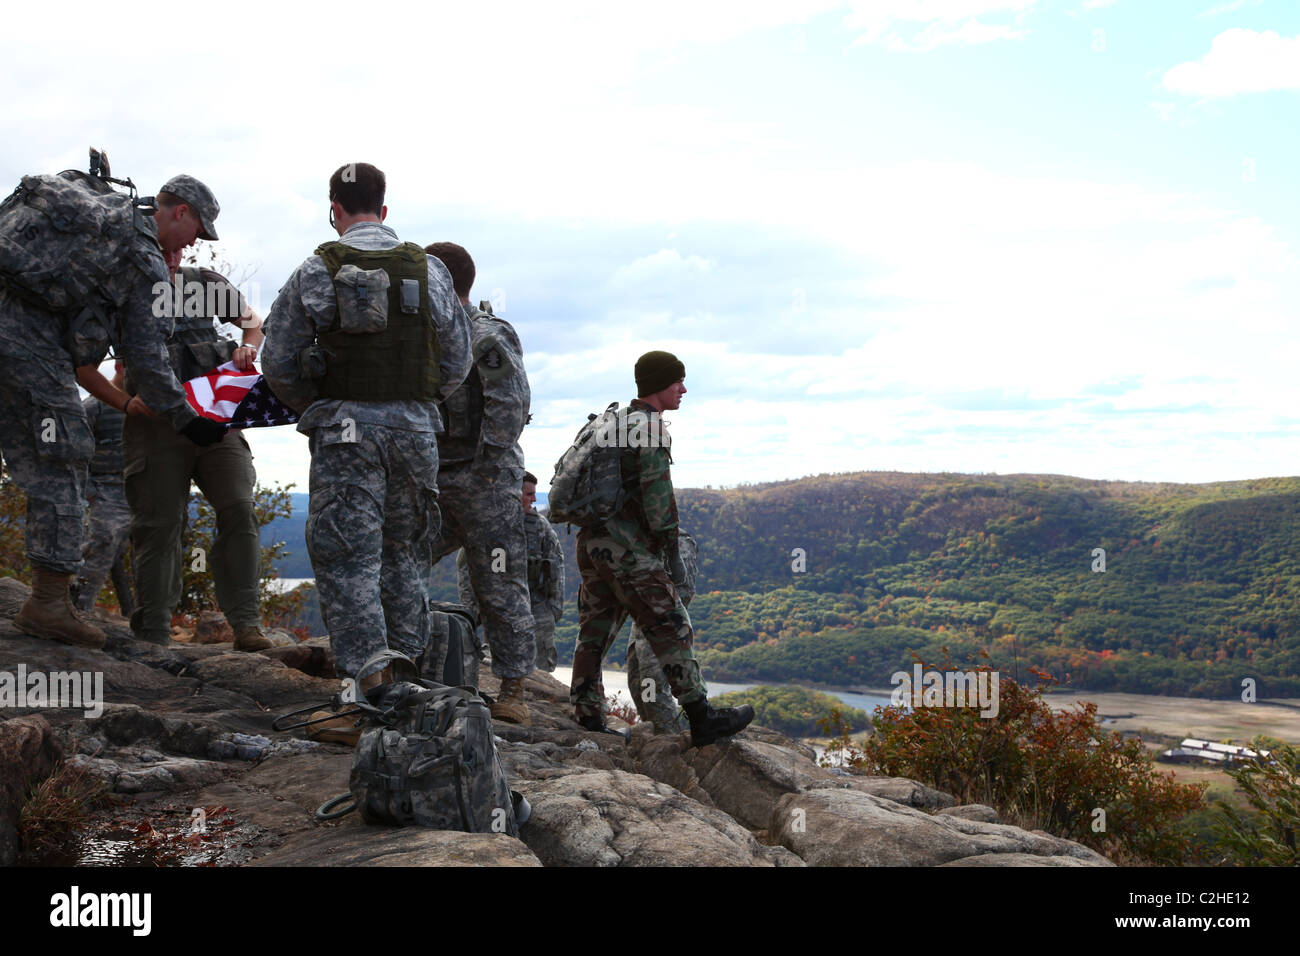 Soldiers folding up an American flag at the top of Anthony's Nose, Cortlandt, NY, USA - Stock Image